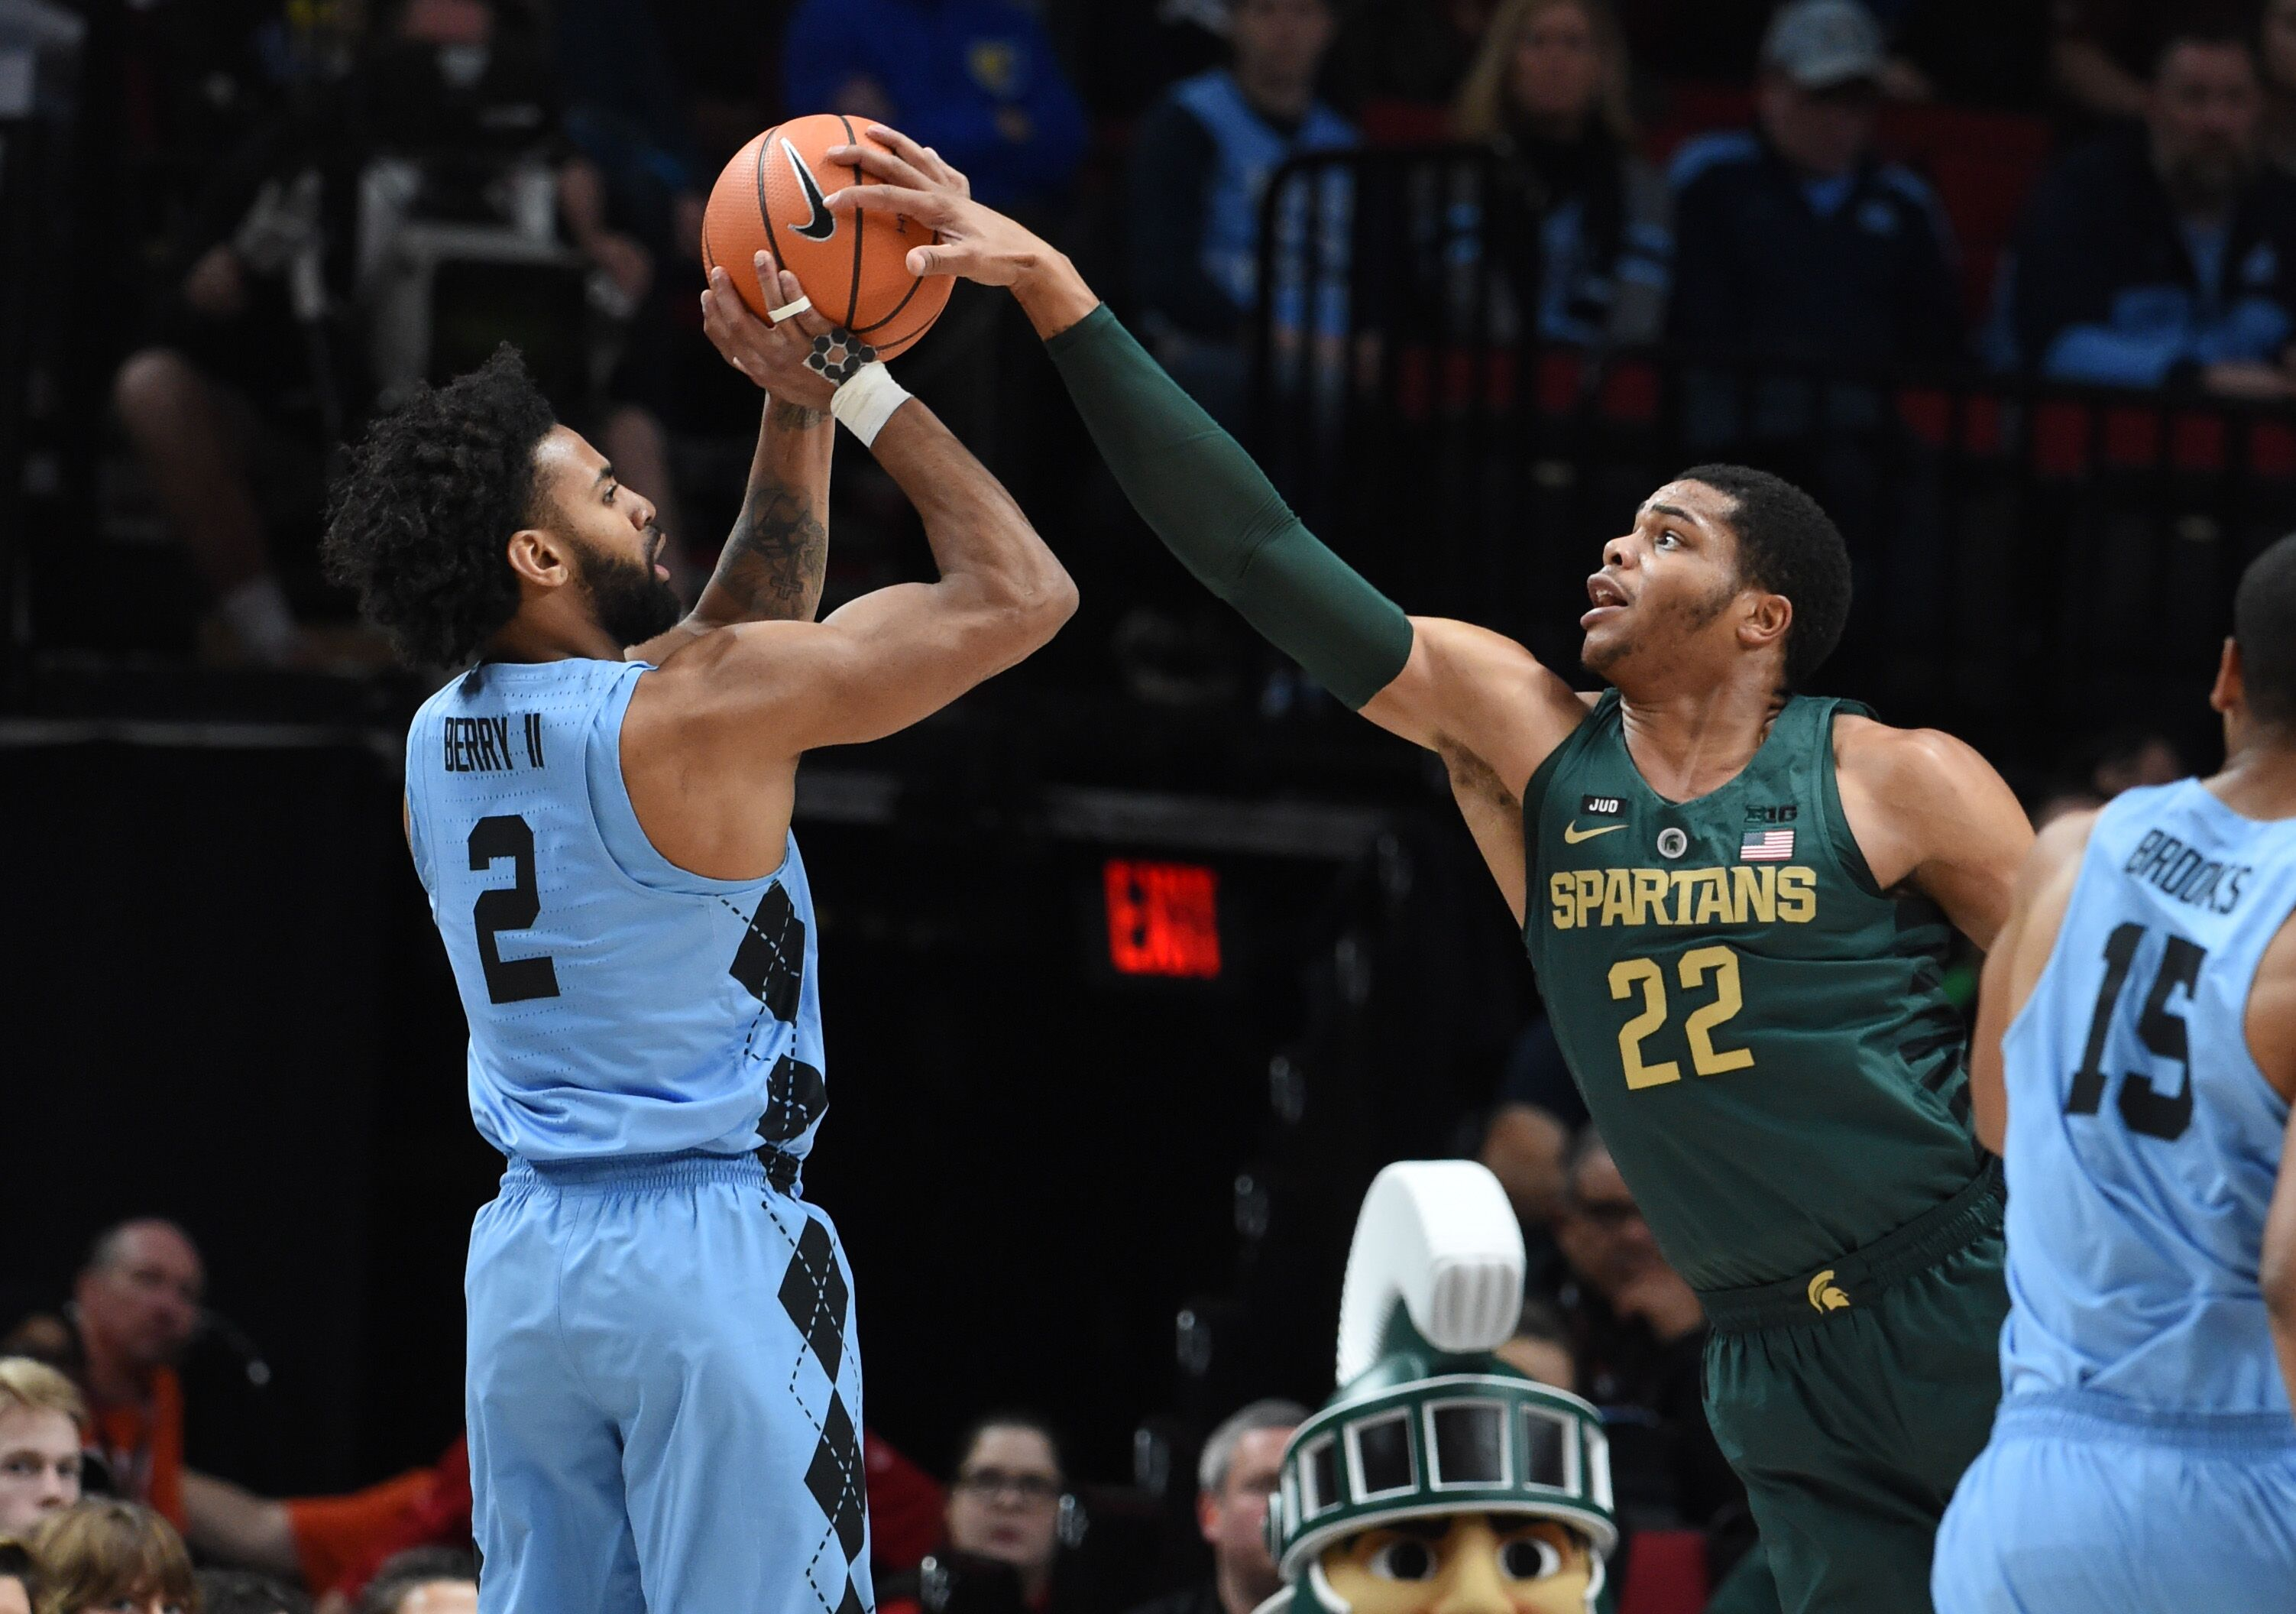 Michigan State Basketball Game Today Live | Games Ojazink